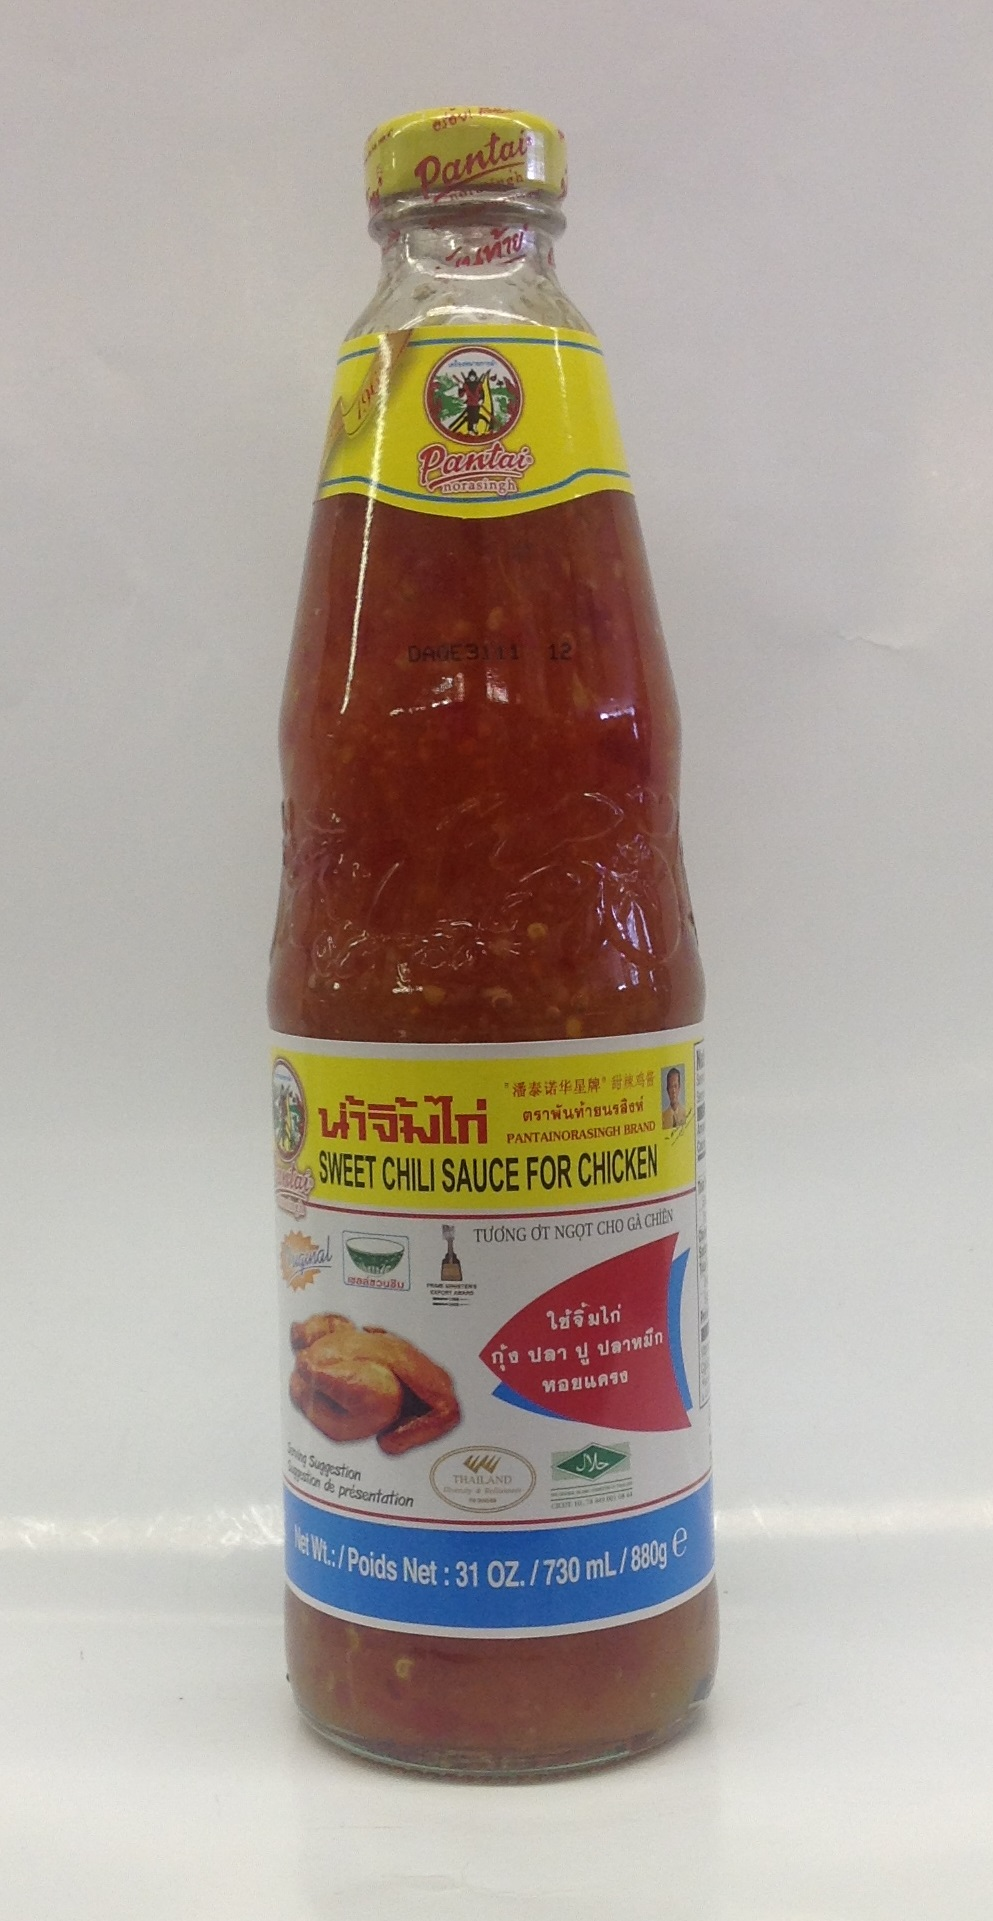 Sweet Chili Sauce for Chicken   Pantai   SC15103 12x27 oz